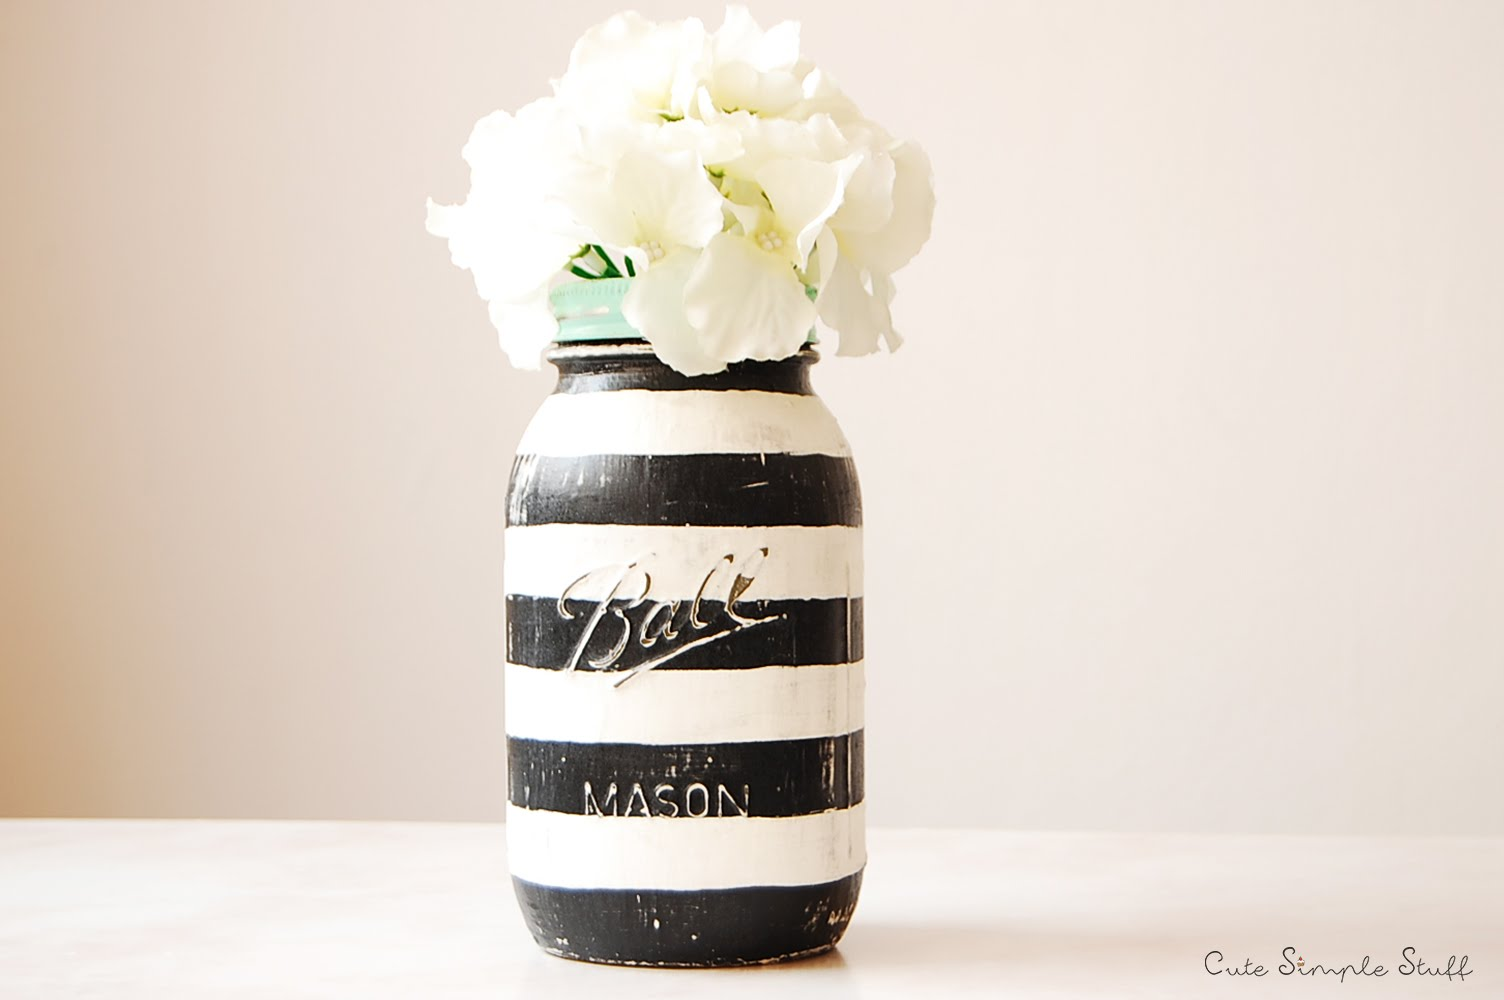 DIY Mason Jar Vases - Artsy Striped Mason Jar is The Bomb!  Easy! - Best Vase Projects and Ideas for Mason Jars - Painted, Wedding, Hanging Flowers, Centerpiece, Rustic Burlap, Ribbon and Twine http://diyjoy.com/diy-mason-jar-vases